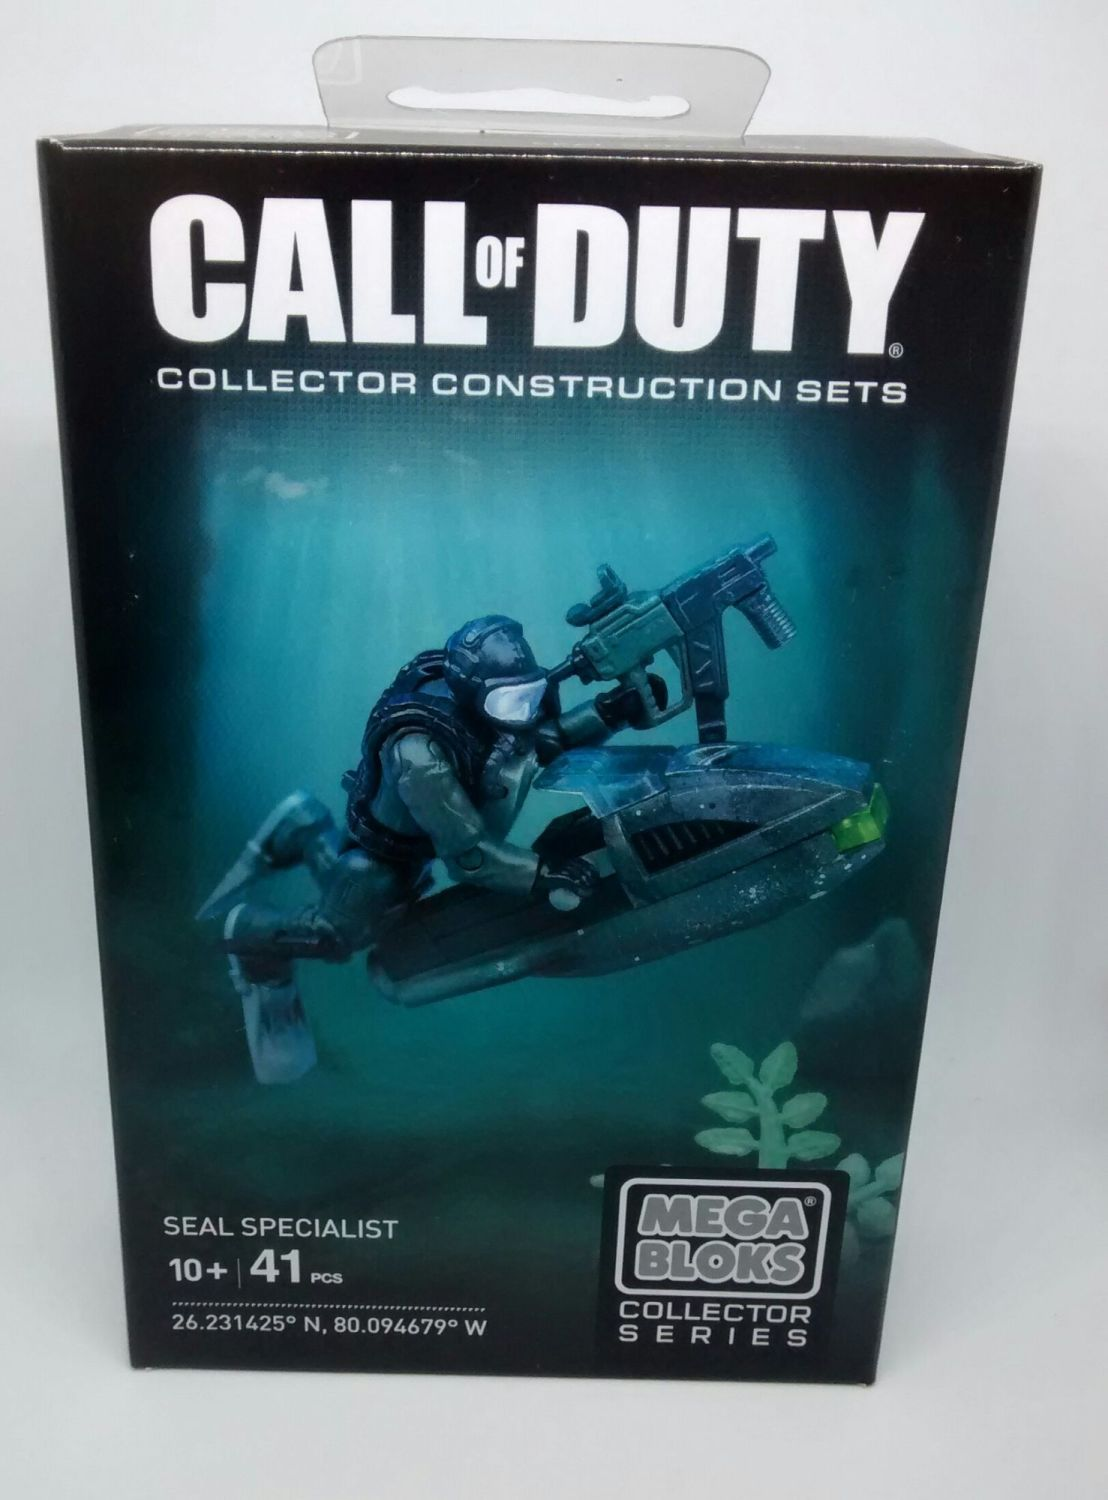 Mega Bloks Collector Series - Call Of Duty - Seal Specialist